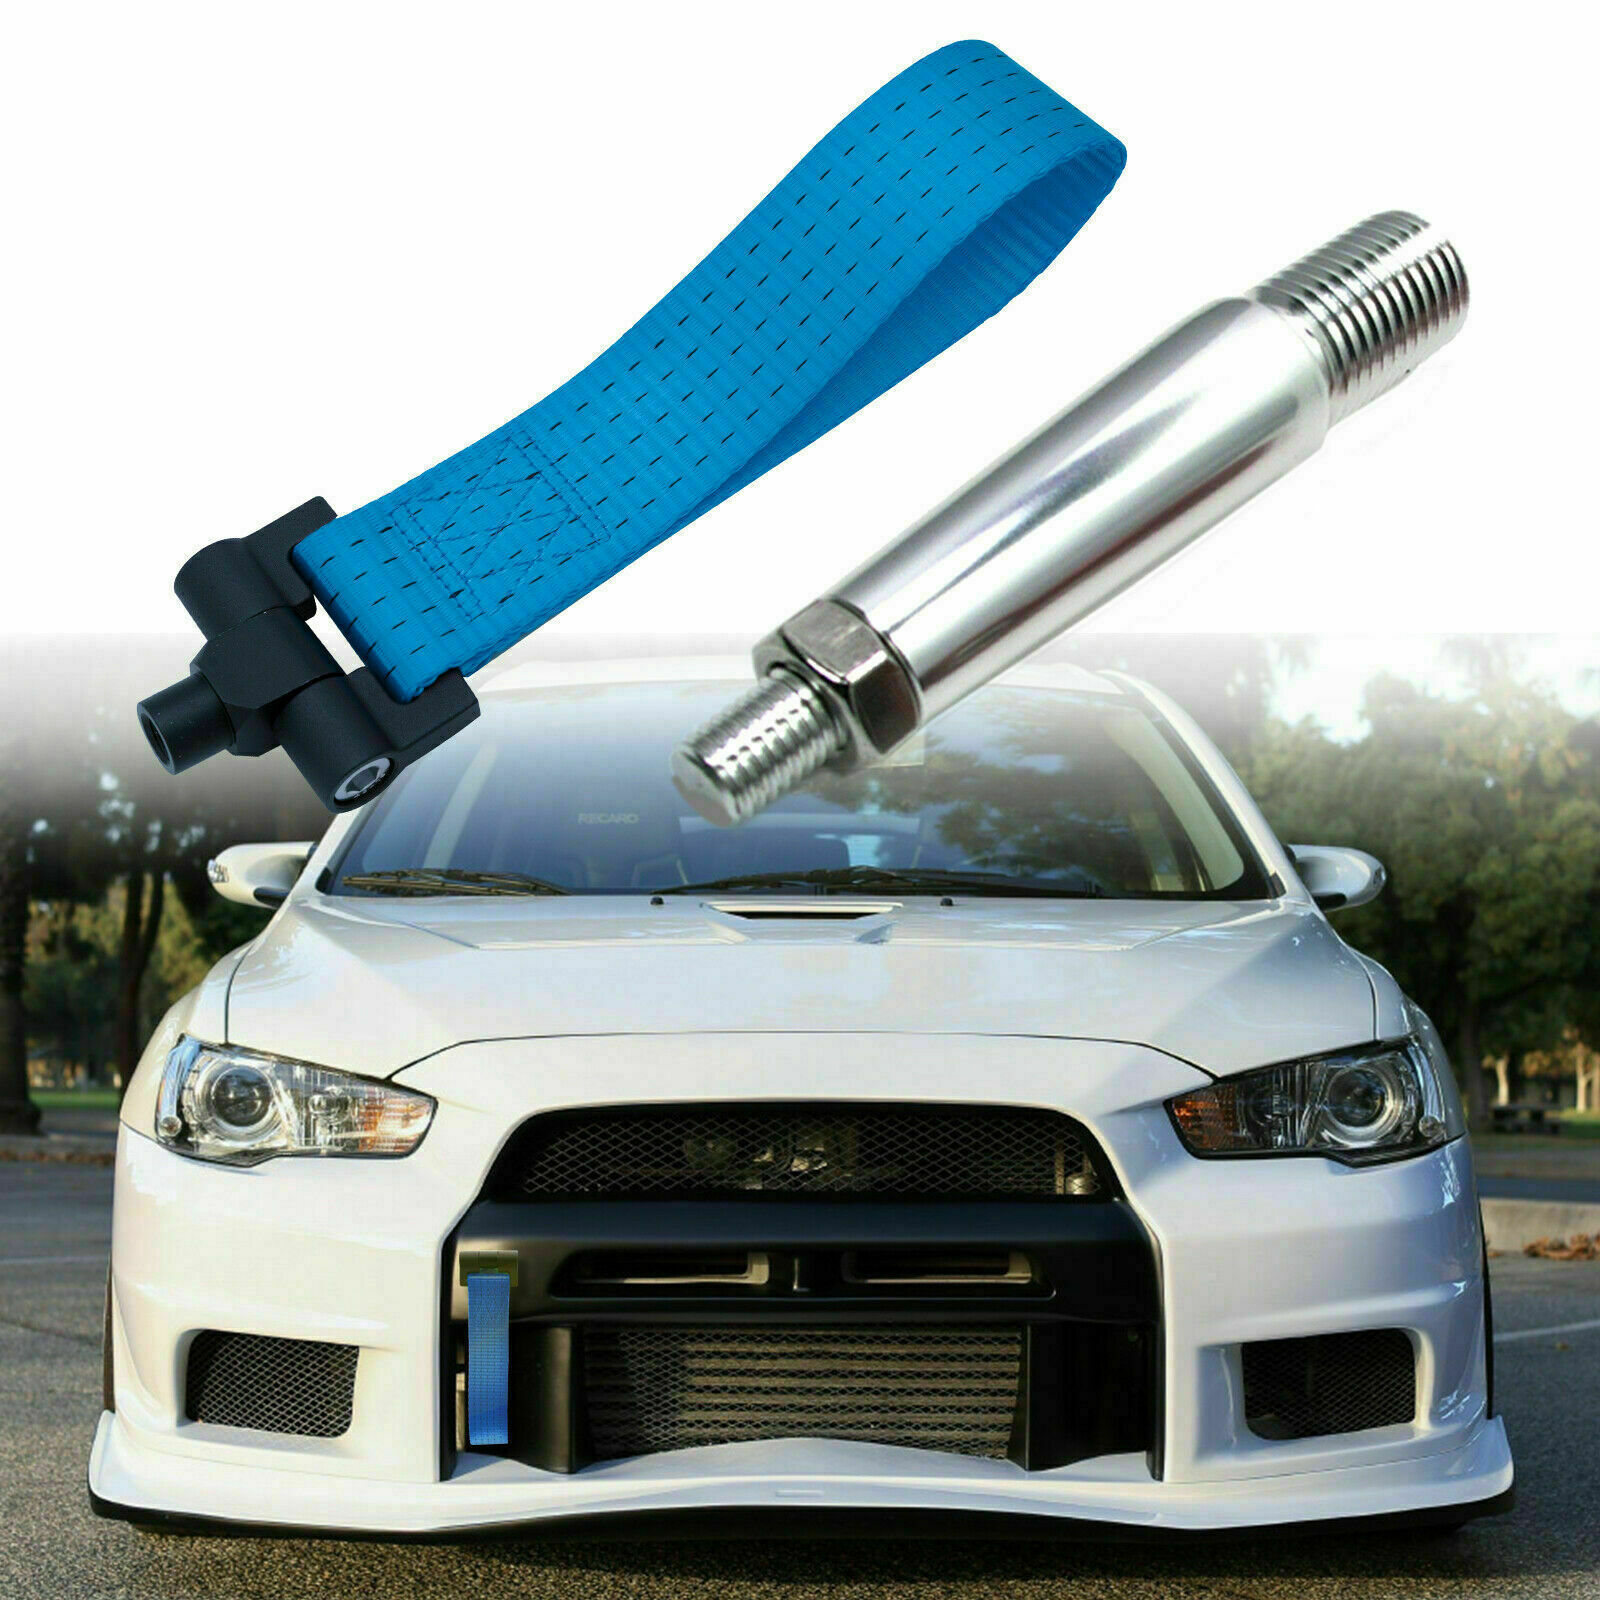 iJDMTOY Blue Track Racing Style Tow Hook Ring Compatible With 2008-2016 Mitsubishi Lancer Evolution Evo X 10 CZ4A Made of Lightweight Aluminum